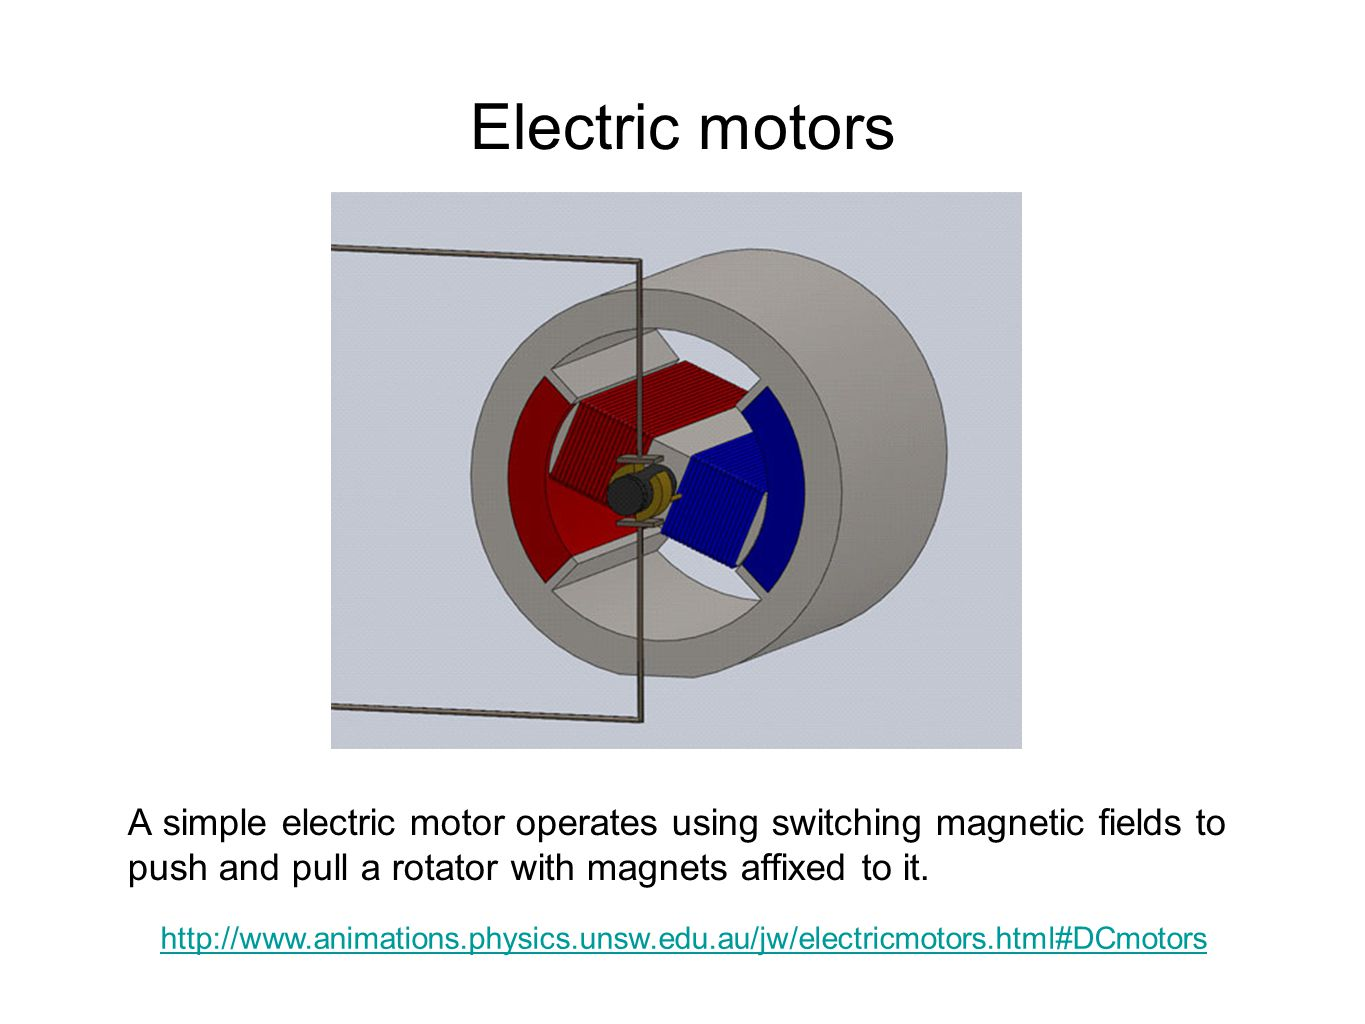 Electric motors A simple electric motor operates using switching magnetic fields to push and pull a rotator with magnets affixed to it.